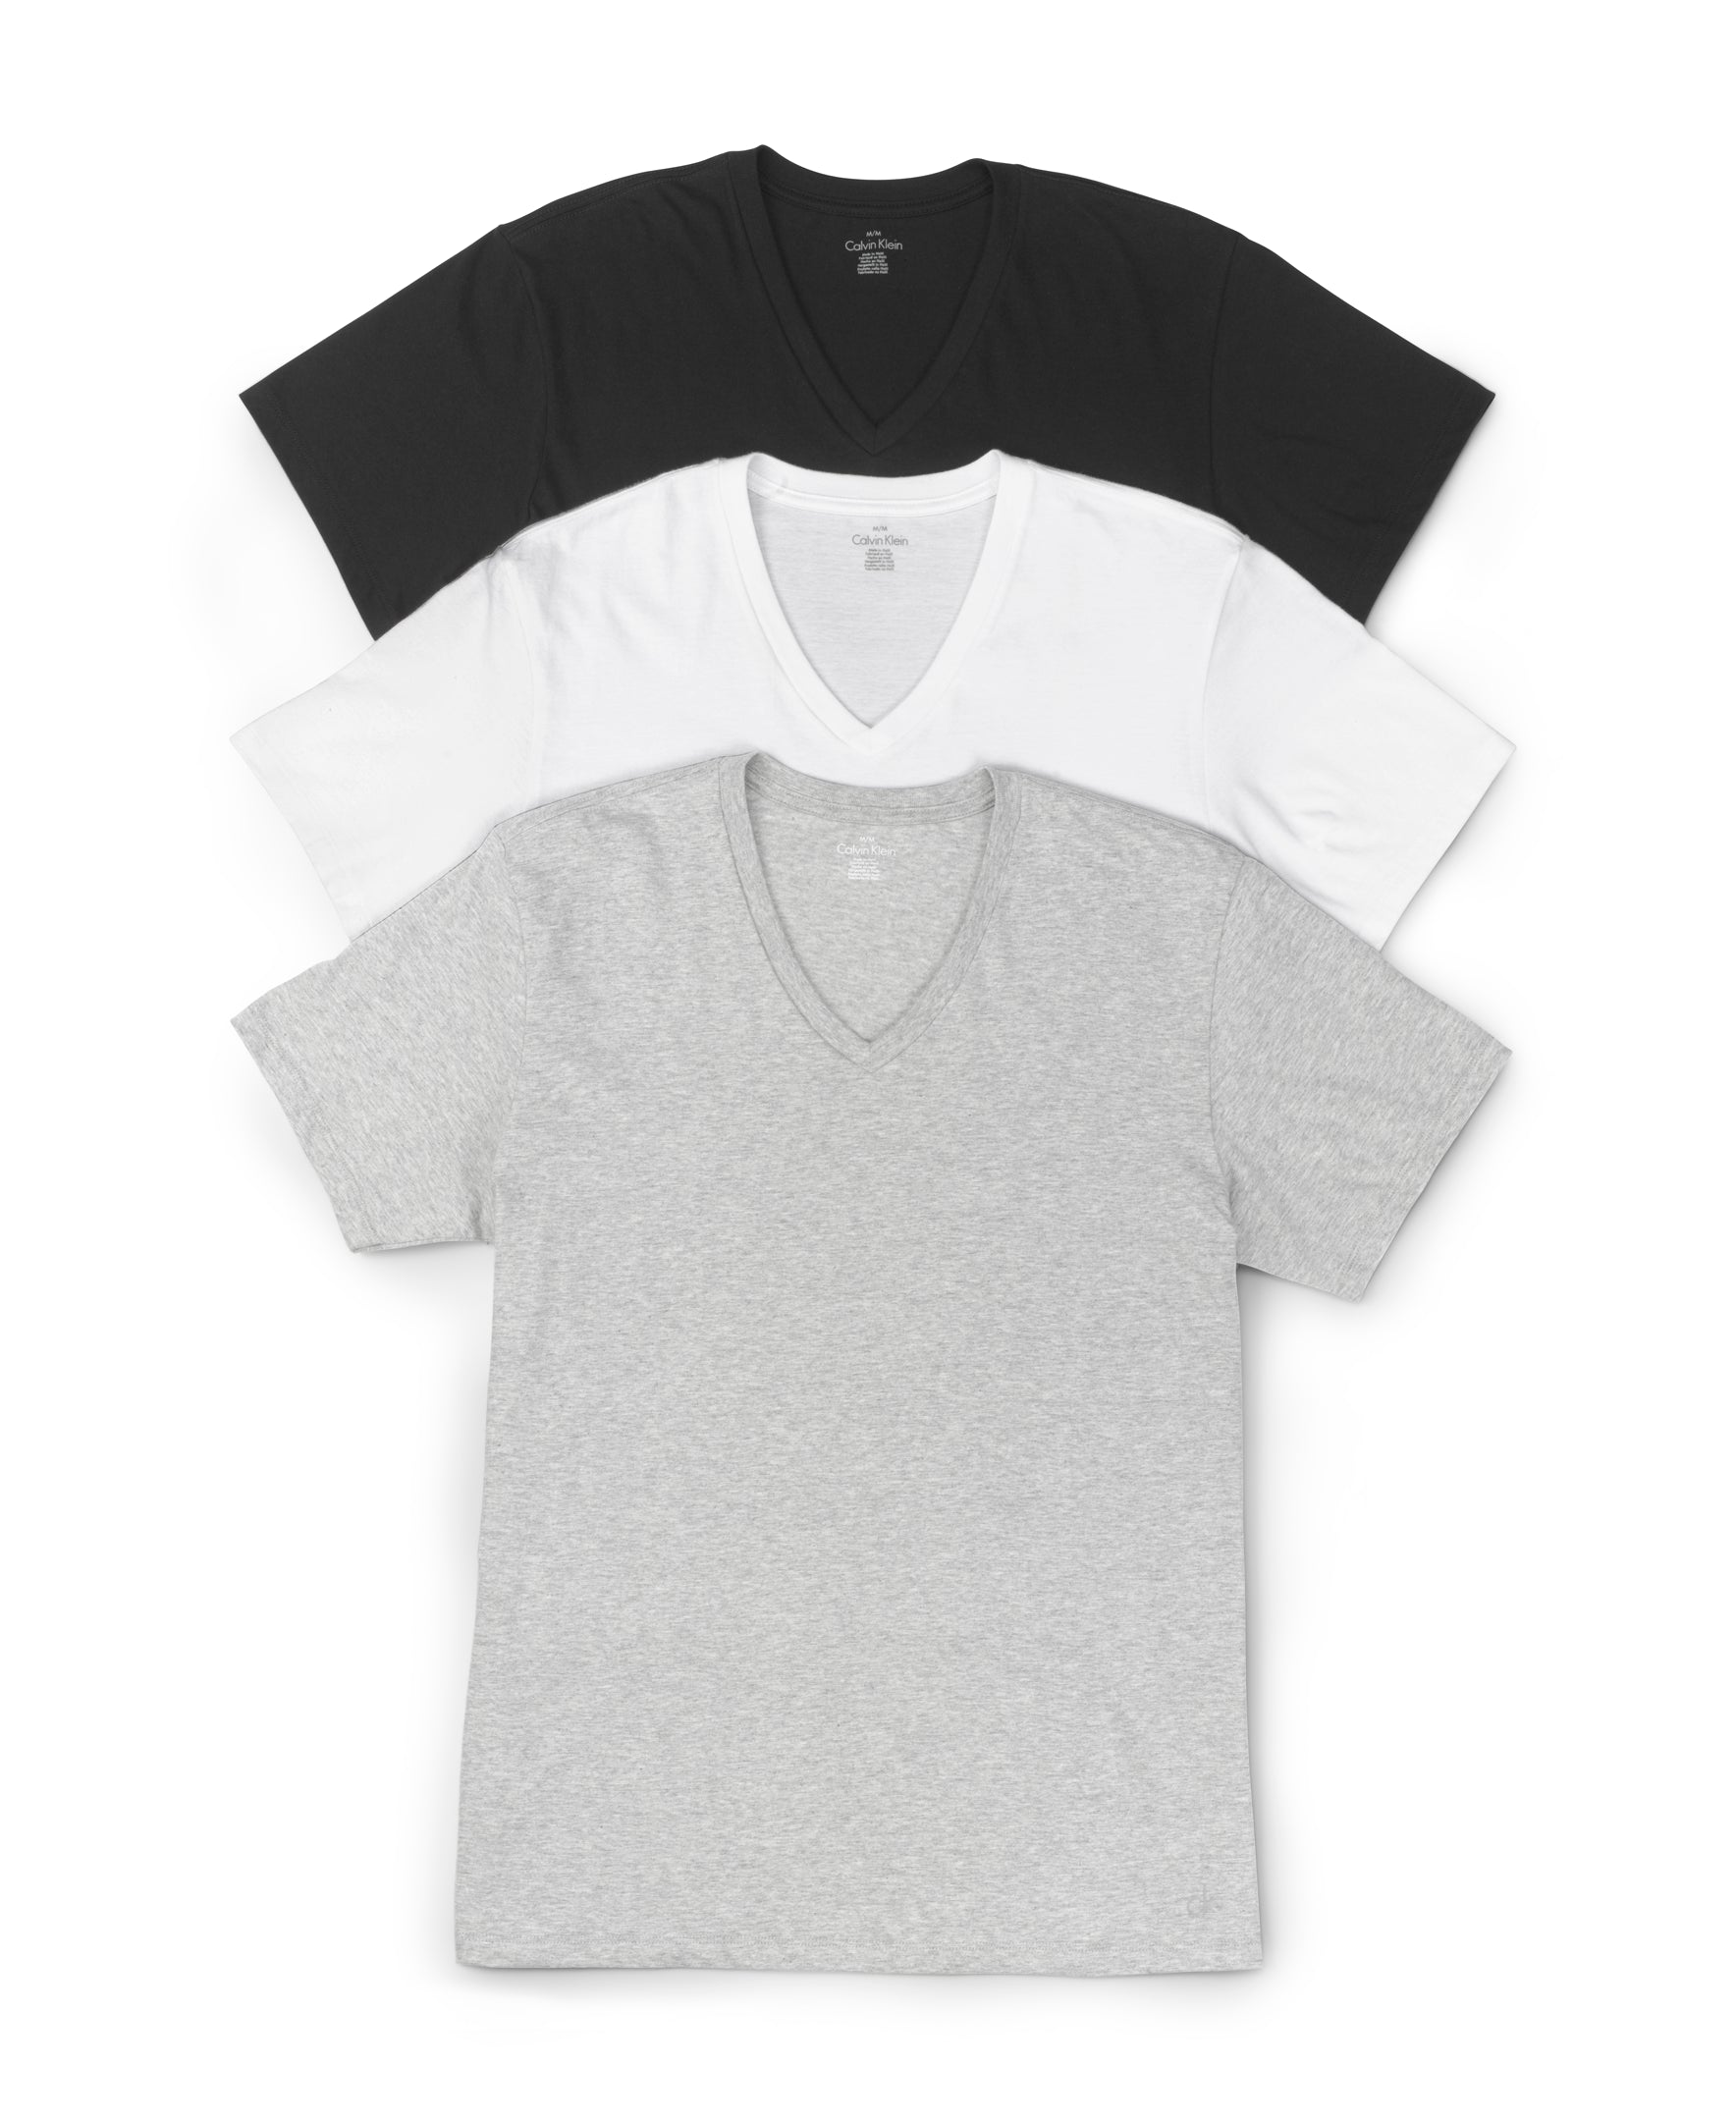 Grey Heather/White/Black Front Calvin Klein 3-Pack Cotton Classic V-Neck T-Shirts M4065